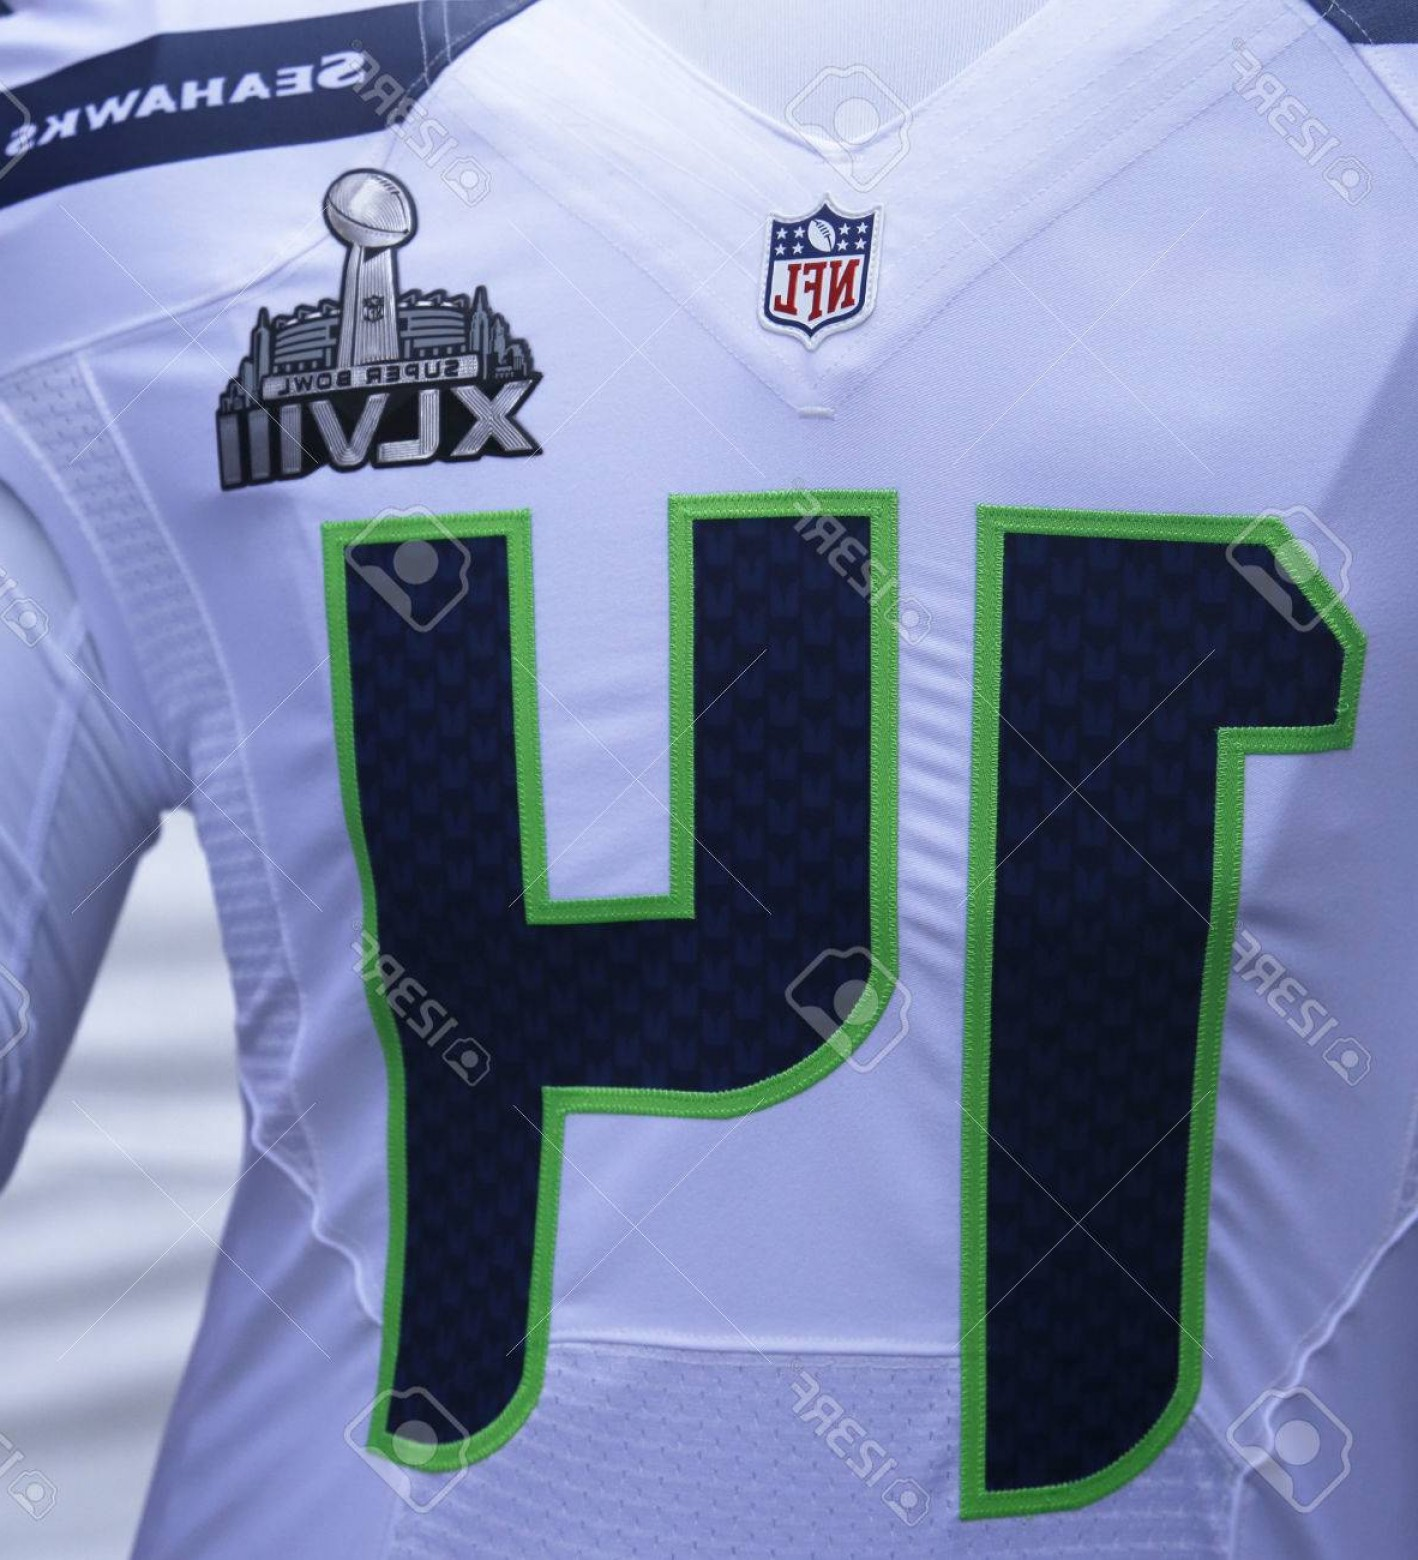 Super Bowl XLVIII Trophy Vector: Photonew York January Seattle Seahawks Team Uniform With Super Bowl Xlviii Logo Presented During Super